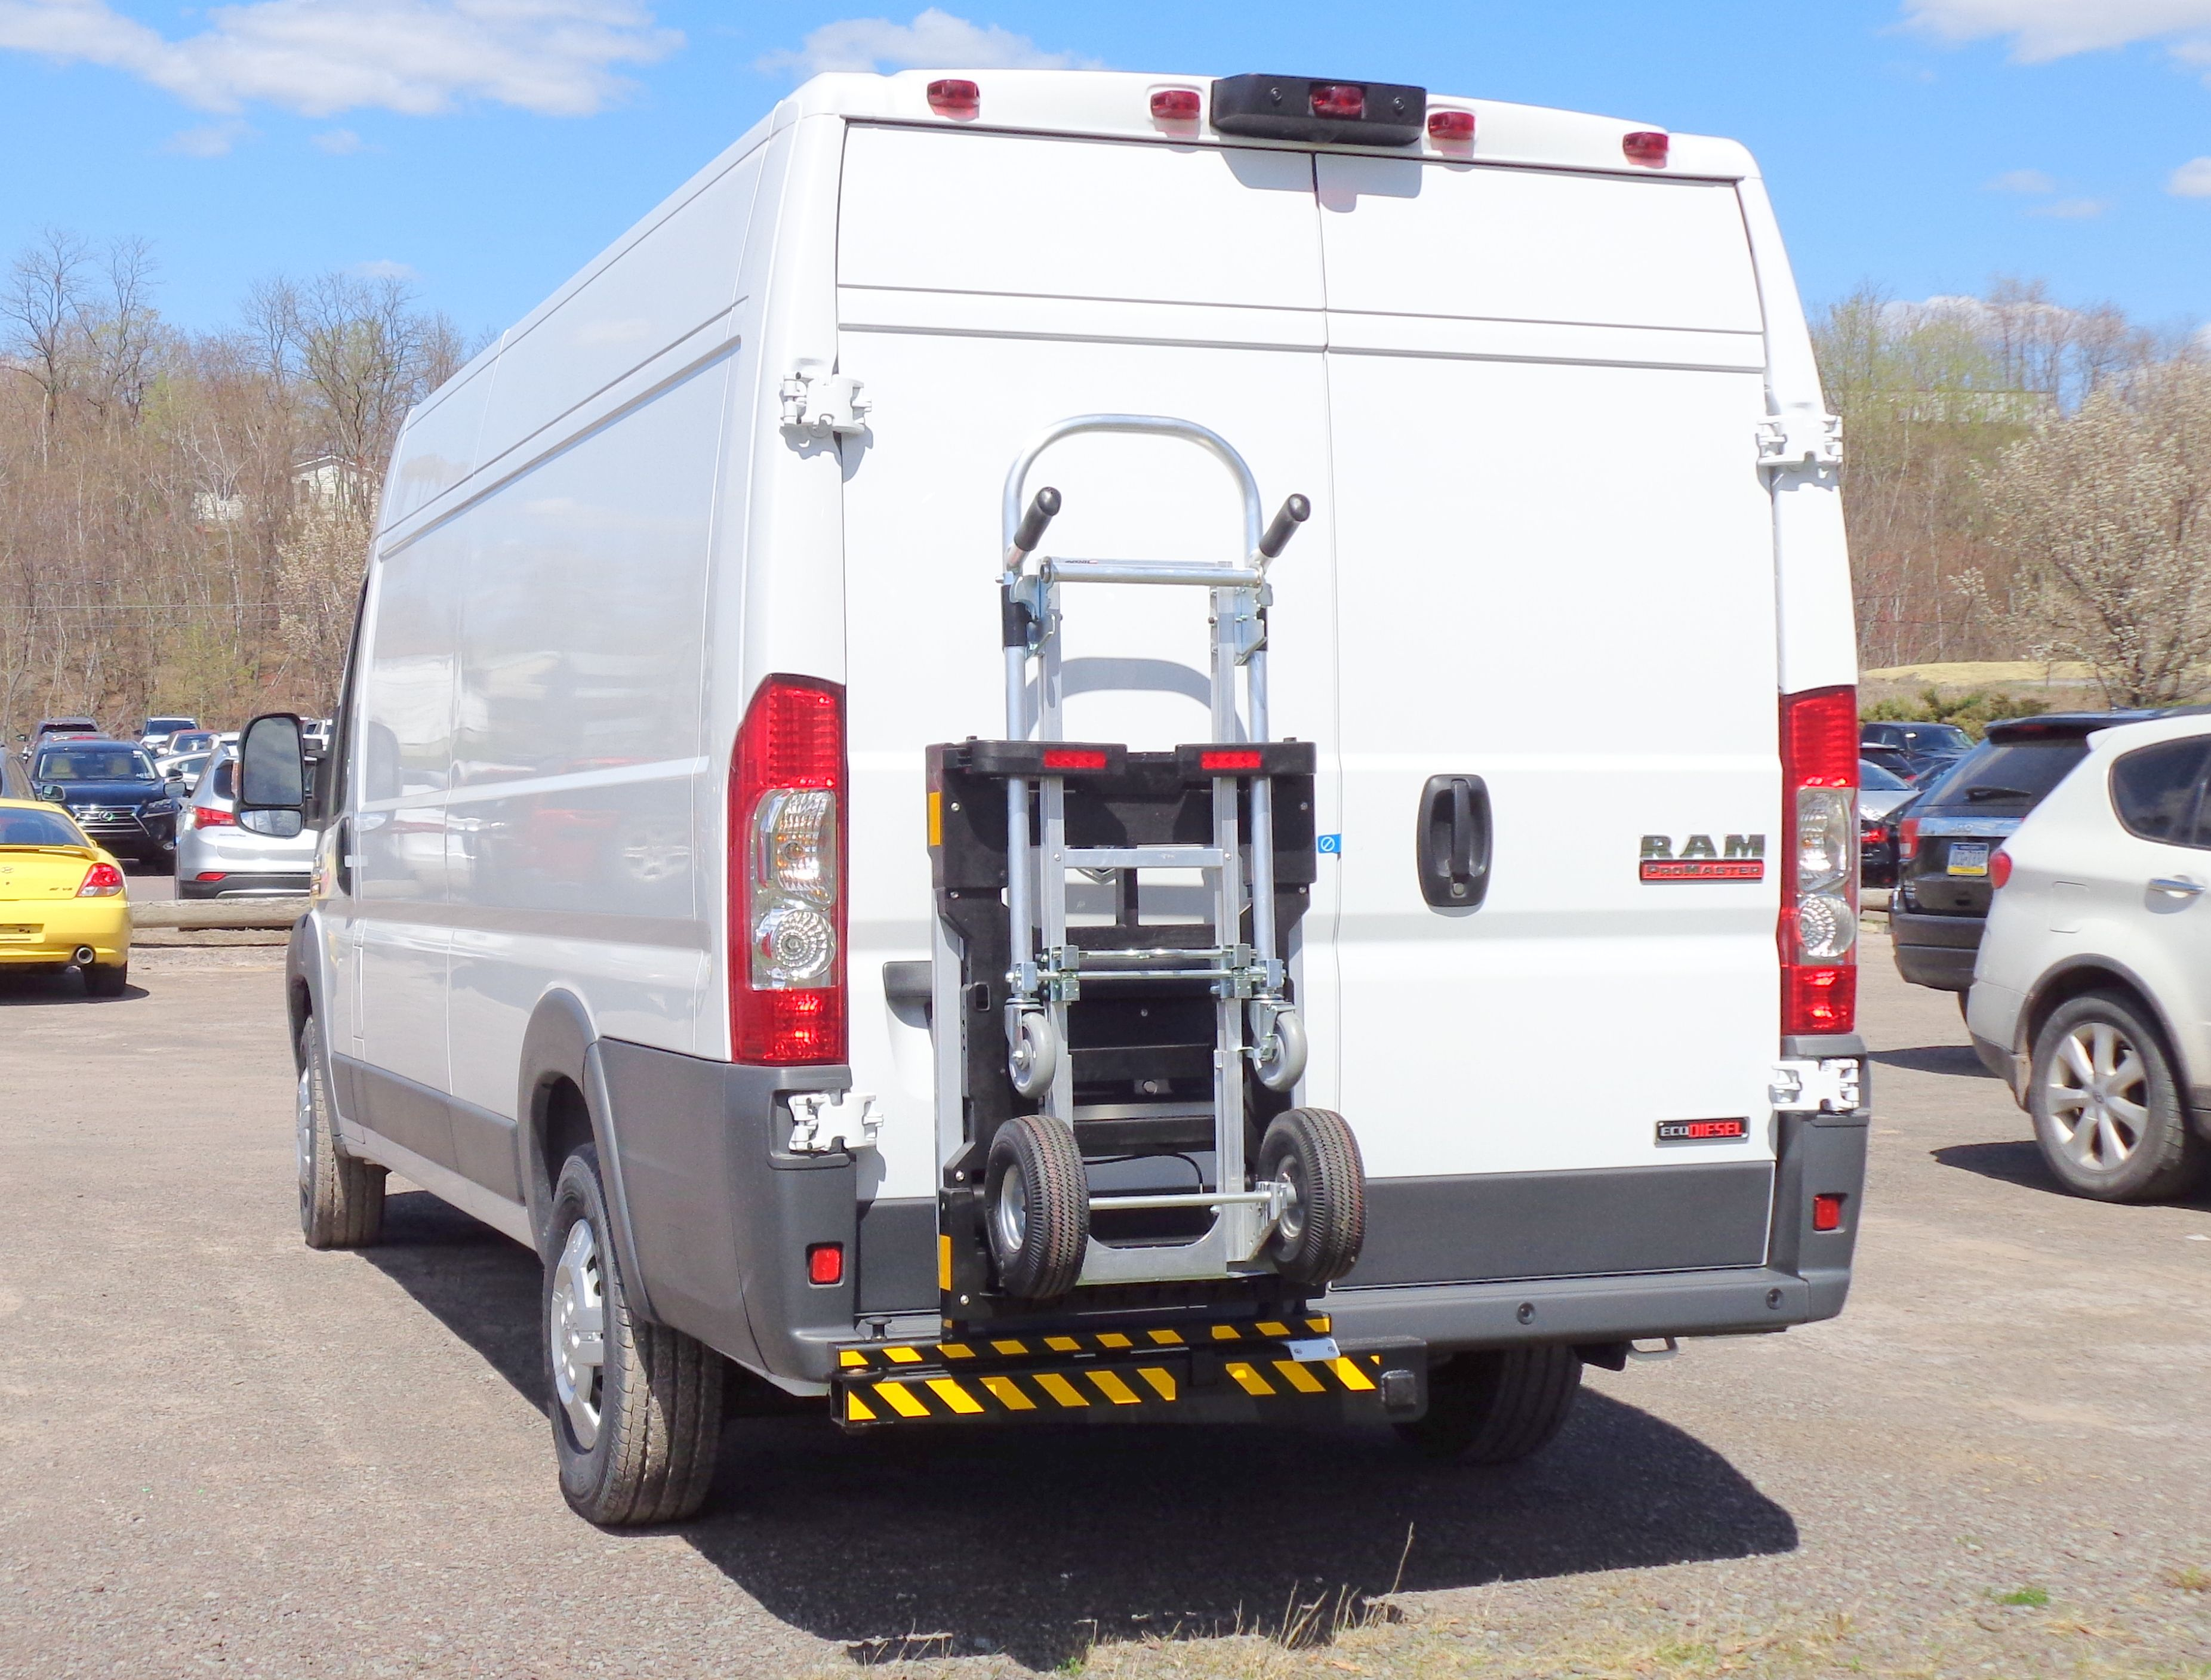 Dodge Promaster Commercial Cargo Van With Hts Systems Safety And Productivity Delivery Equipment Faster Deliveries More C Truck Transport Hand Trucks Trucks